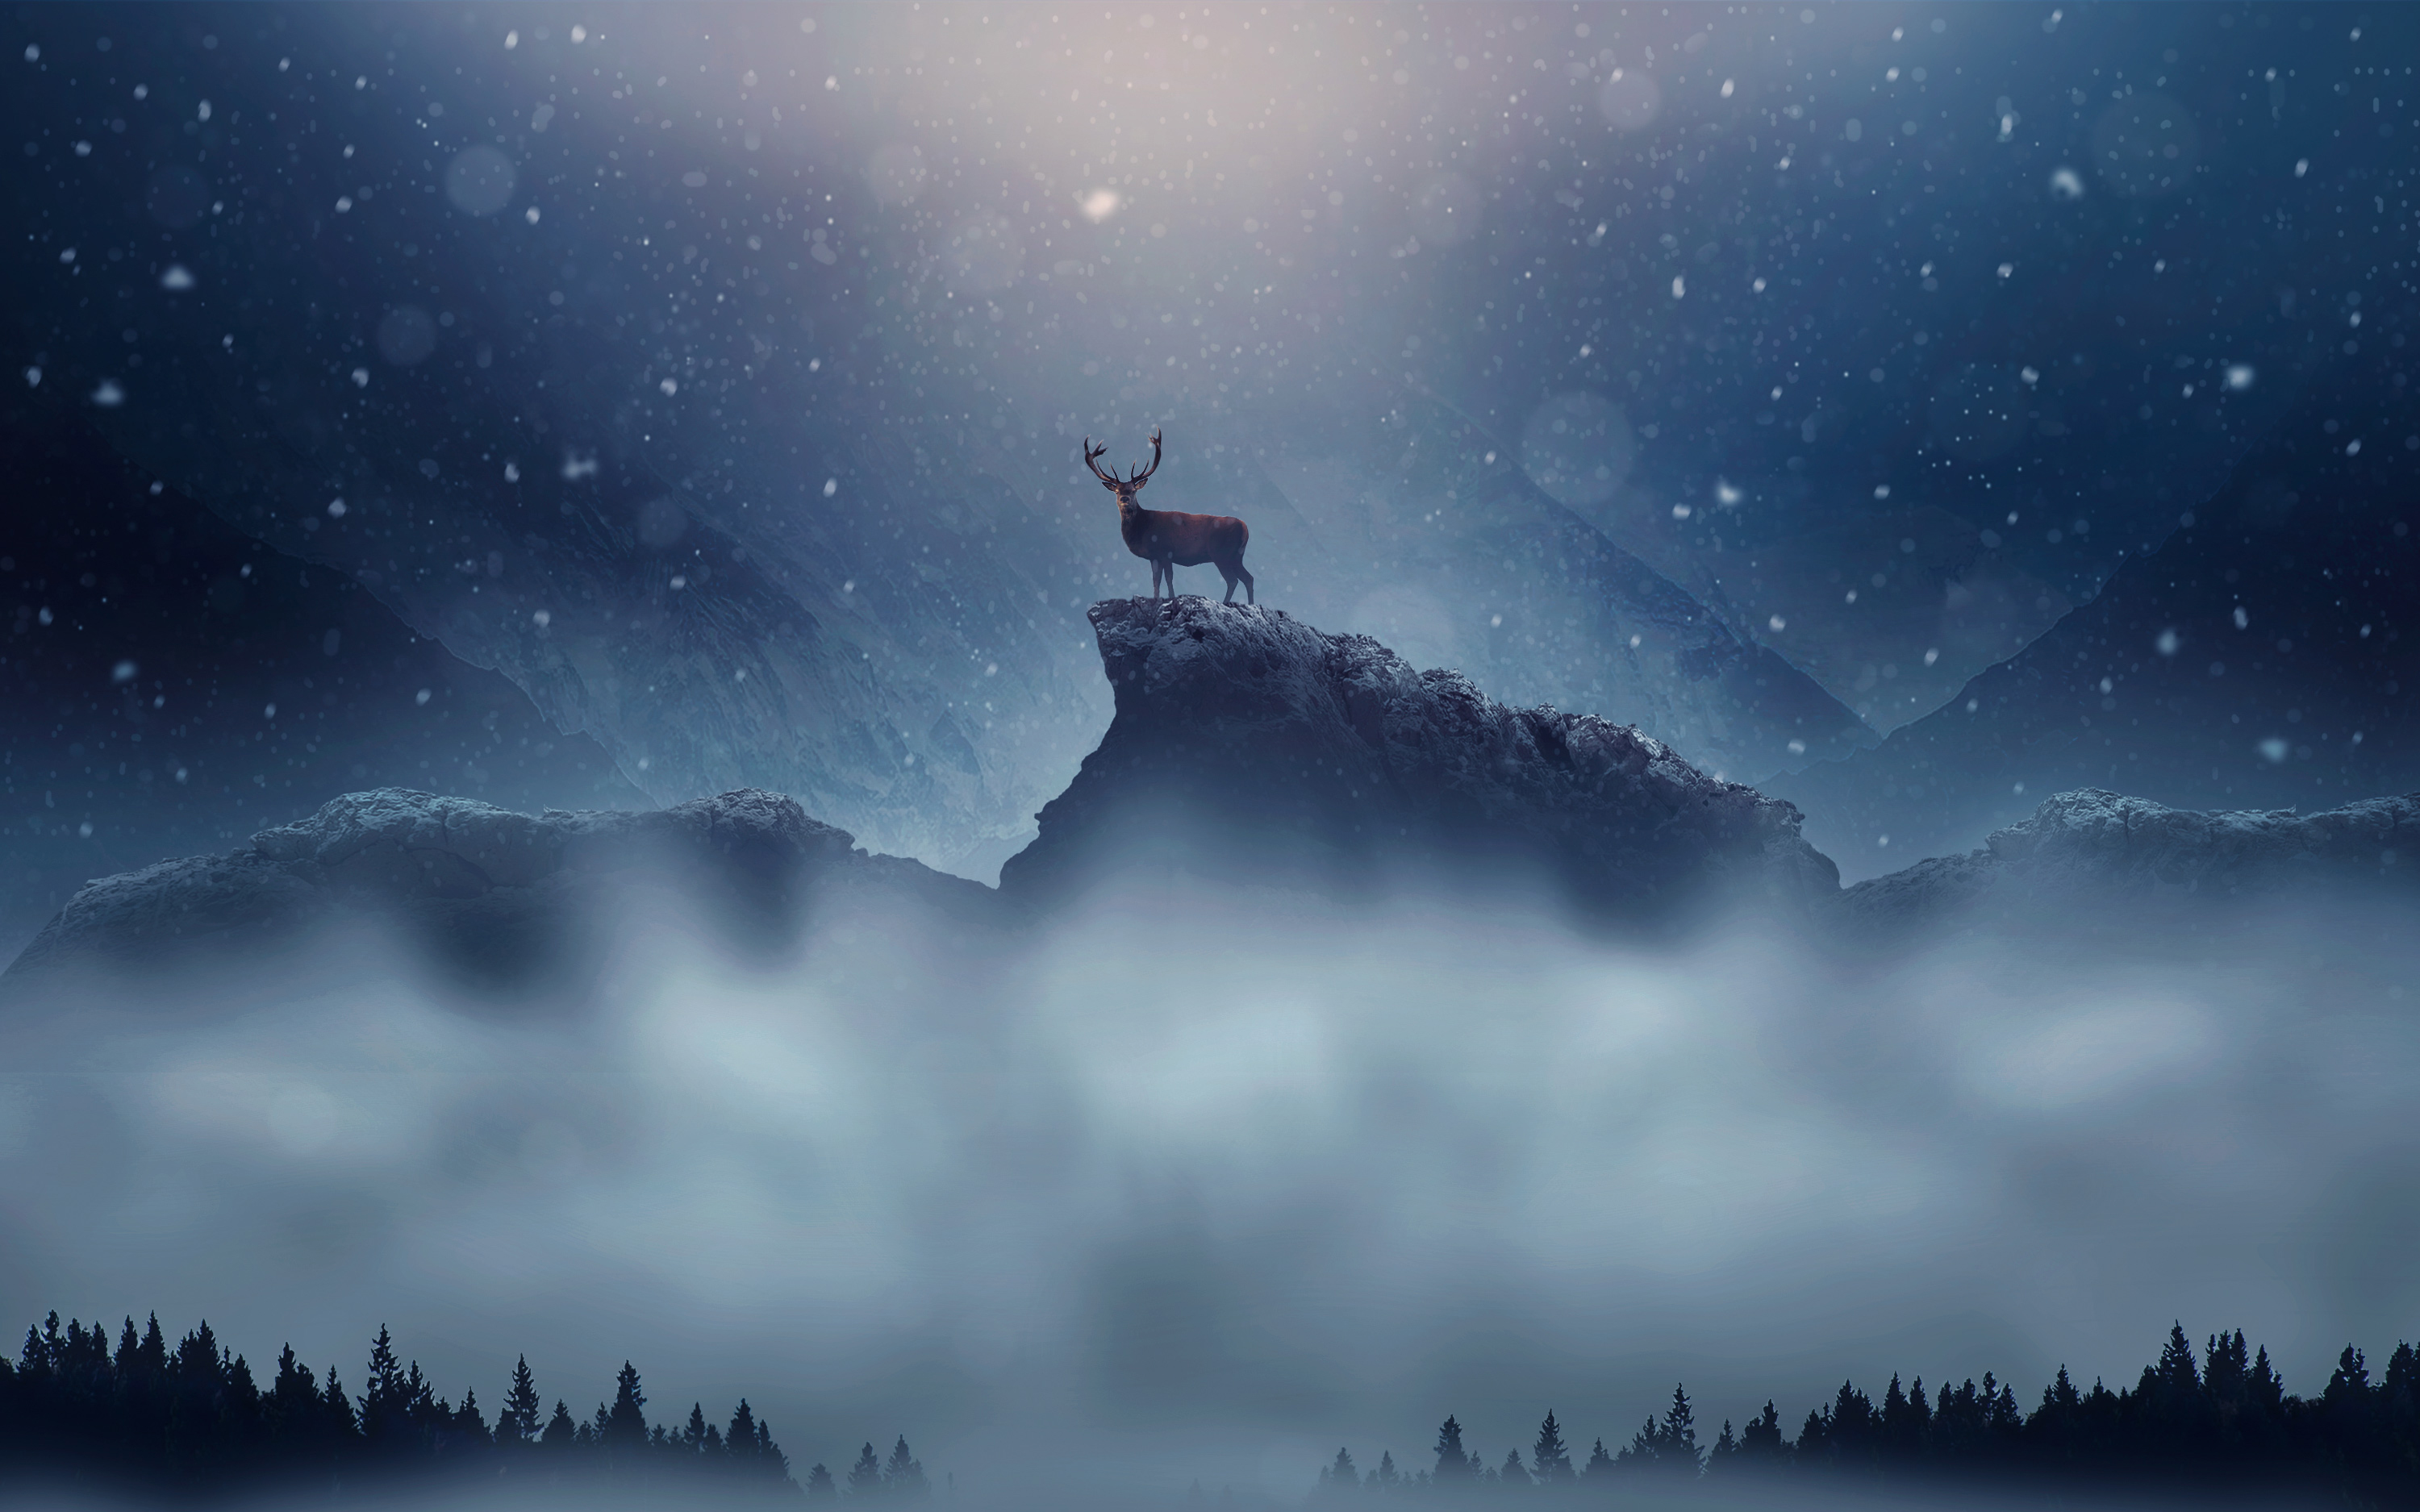 Christmas Deer Snowfall Wallpapers